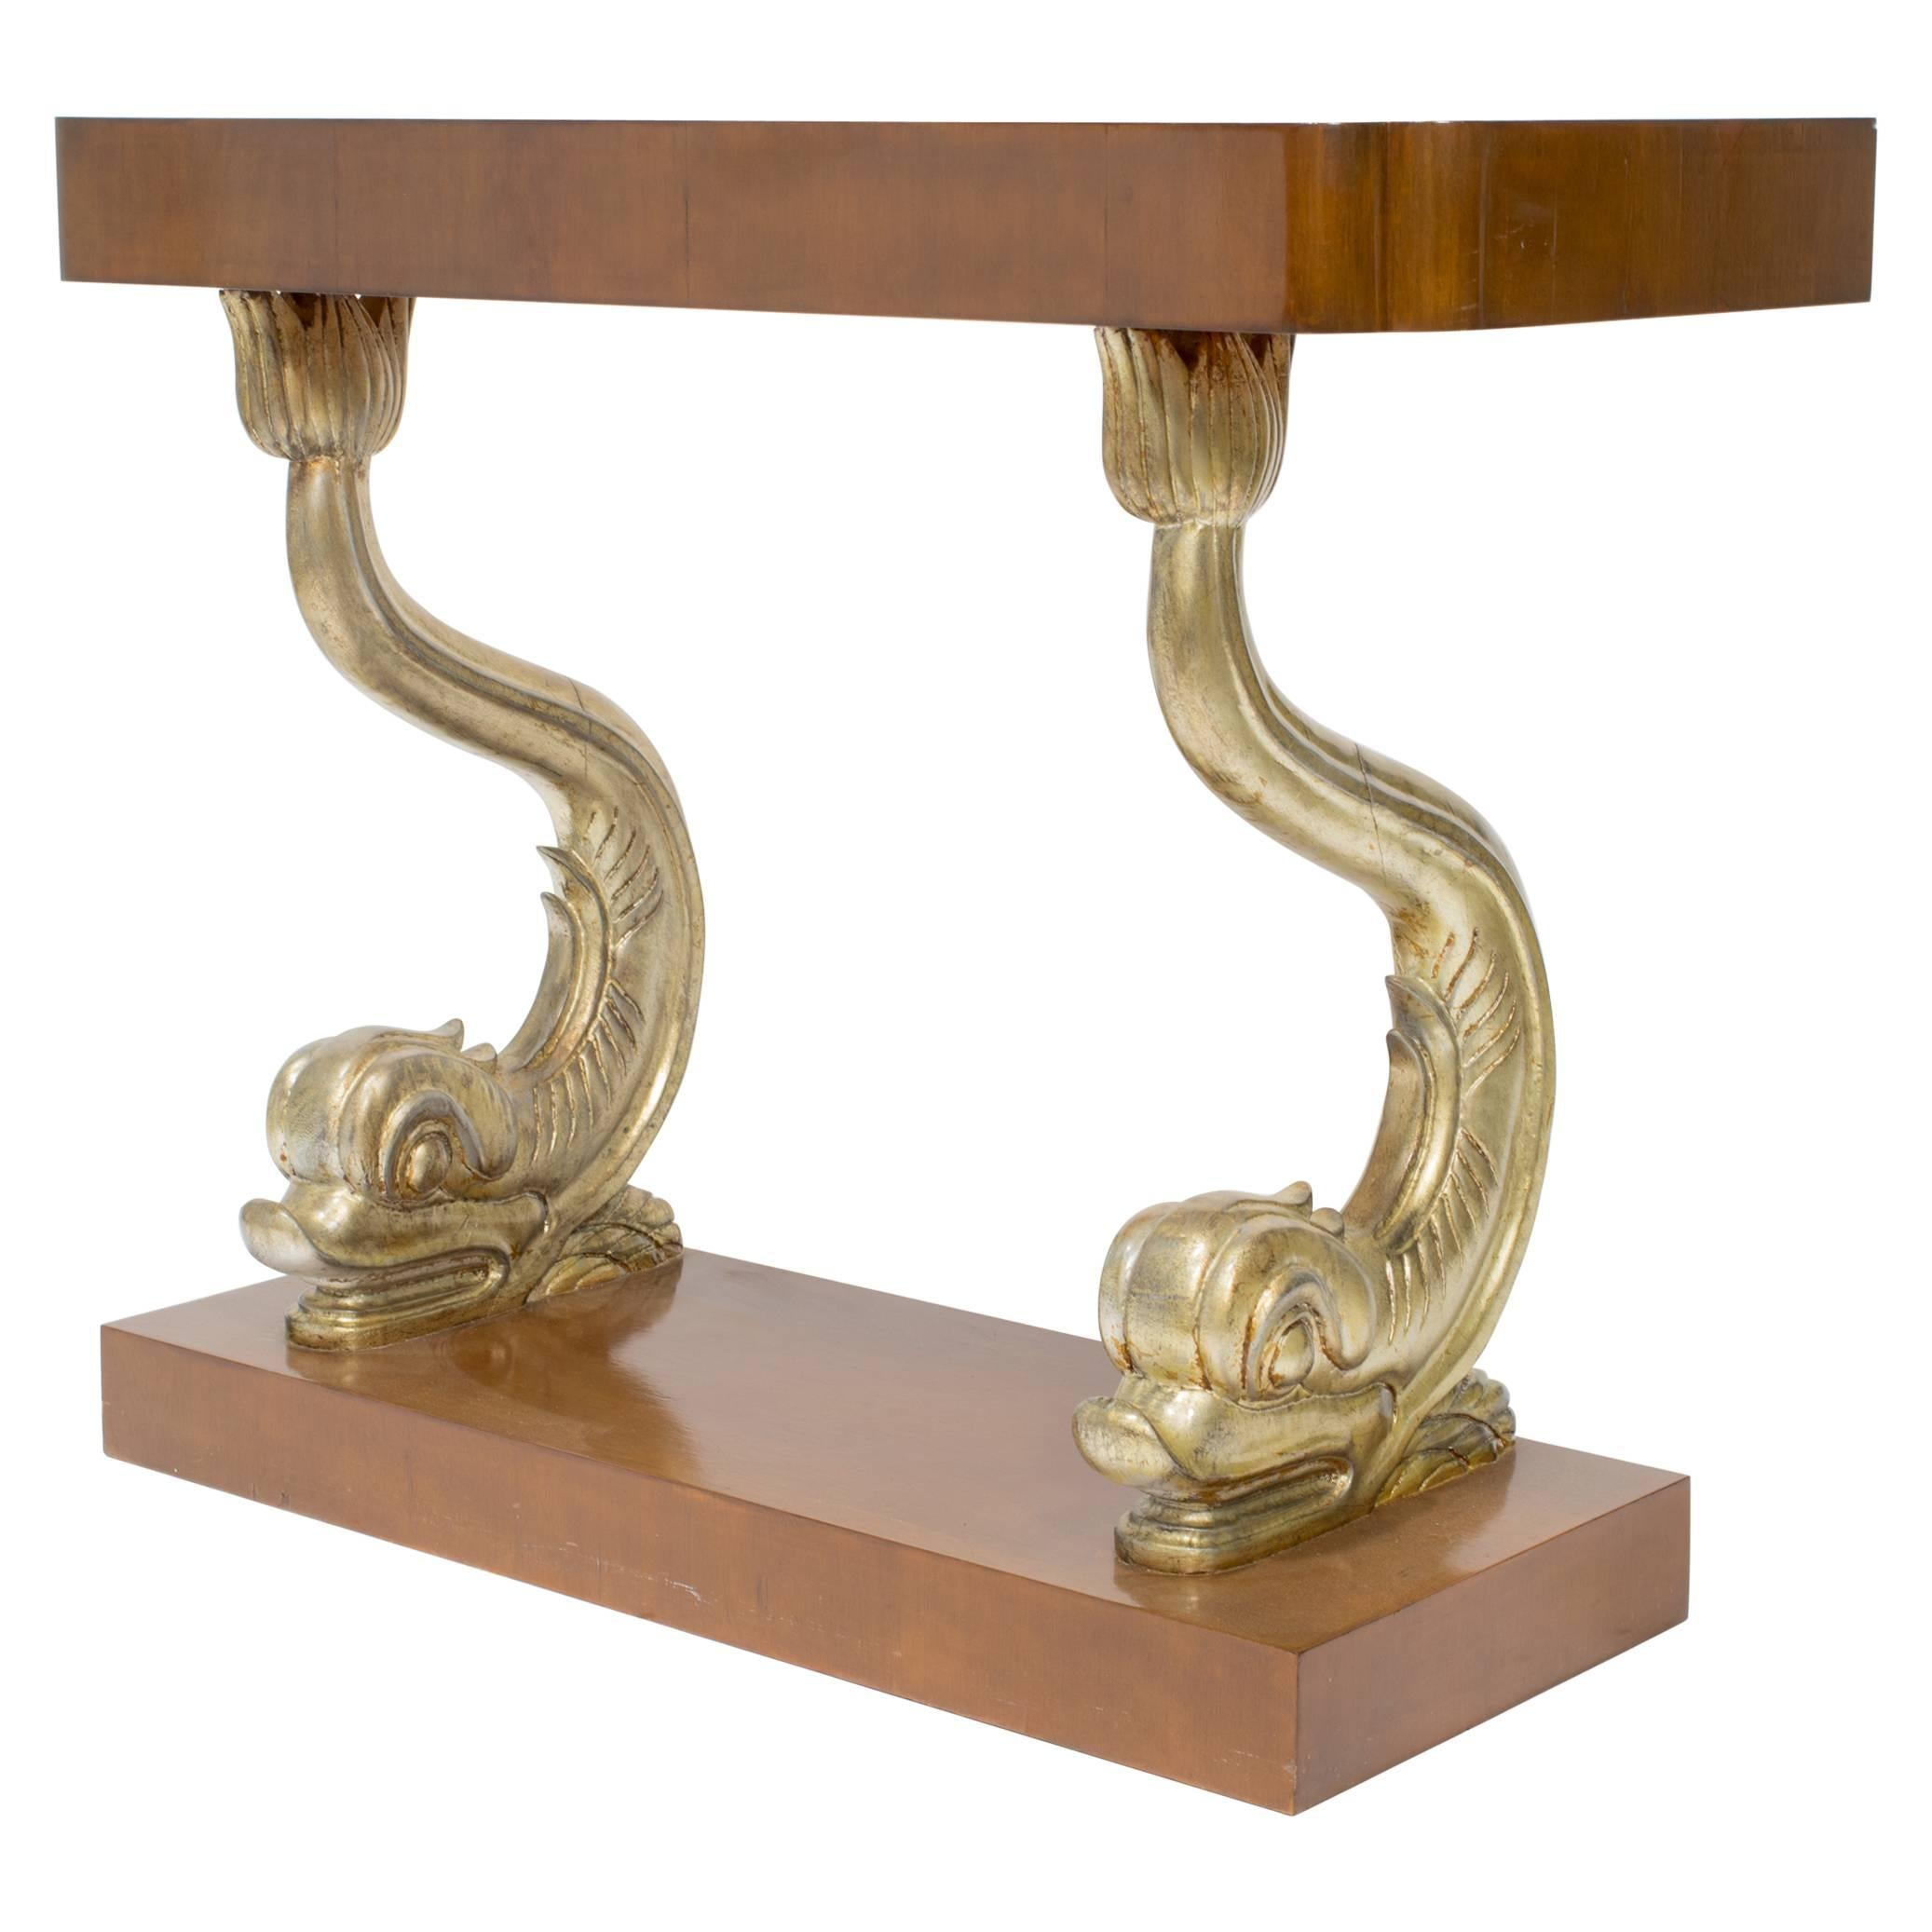 1940s Silvered Dolphin Console Table